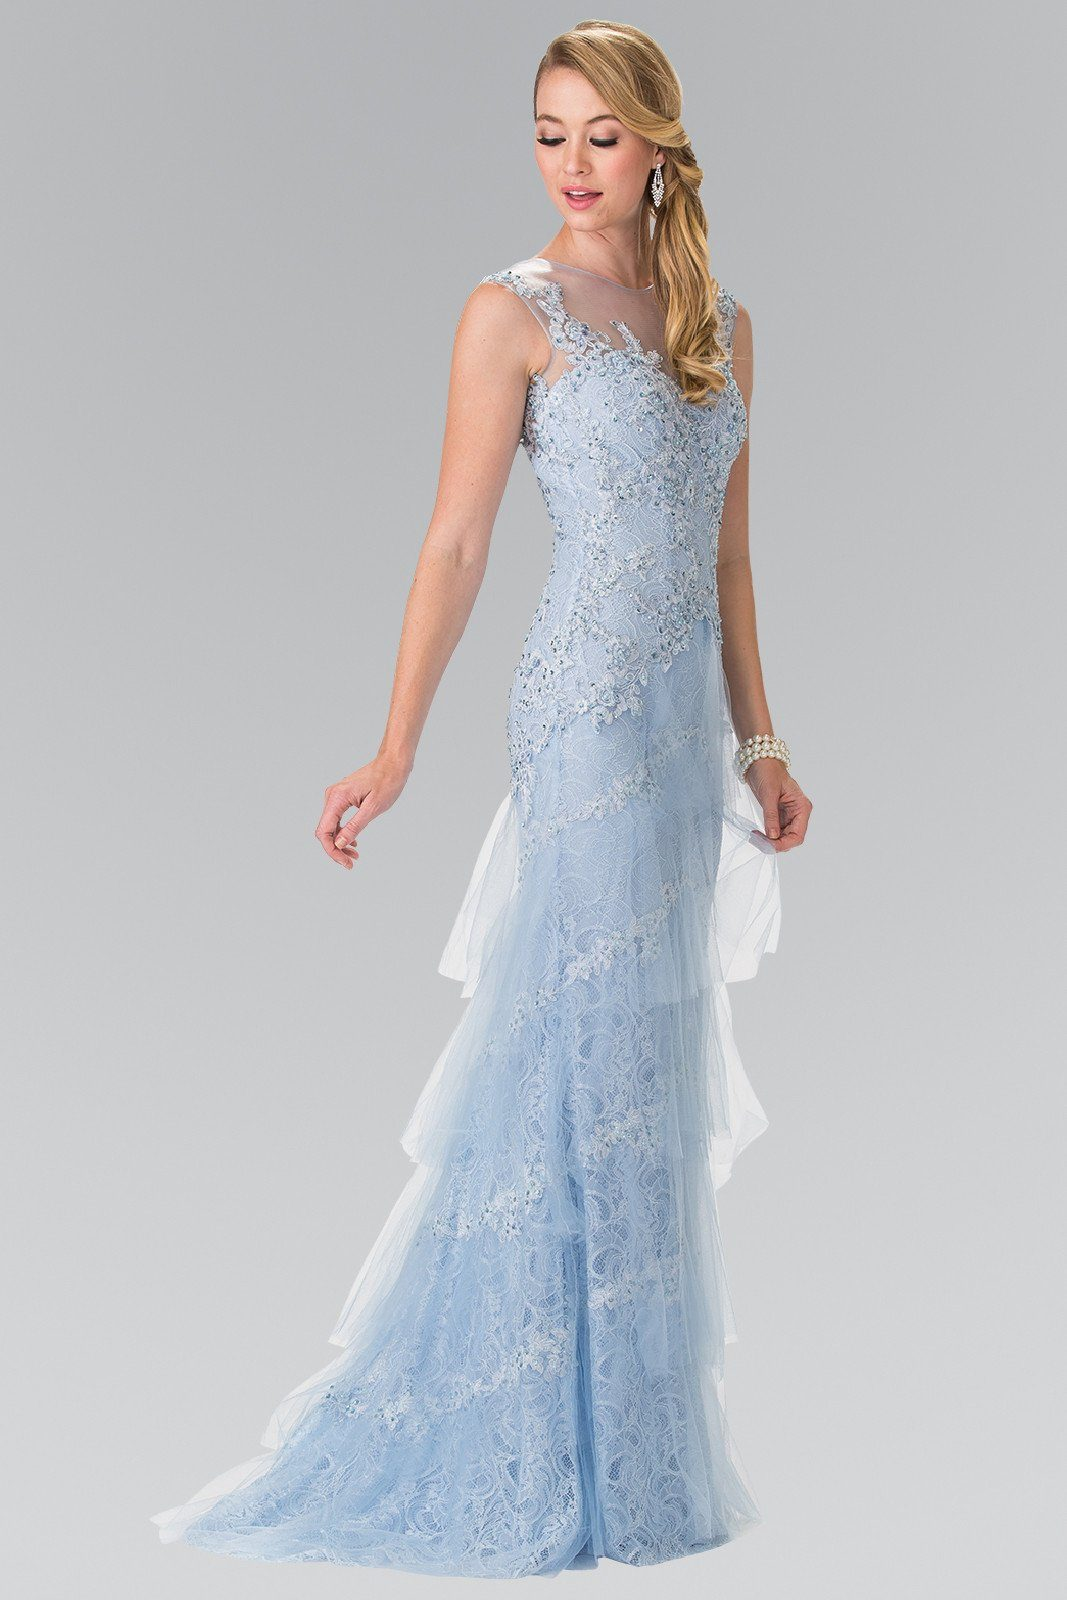 Lace and tulle periwinkle wedding dress #gl2258 – Simply Fab Dress